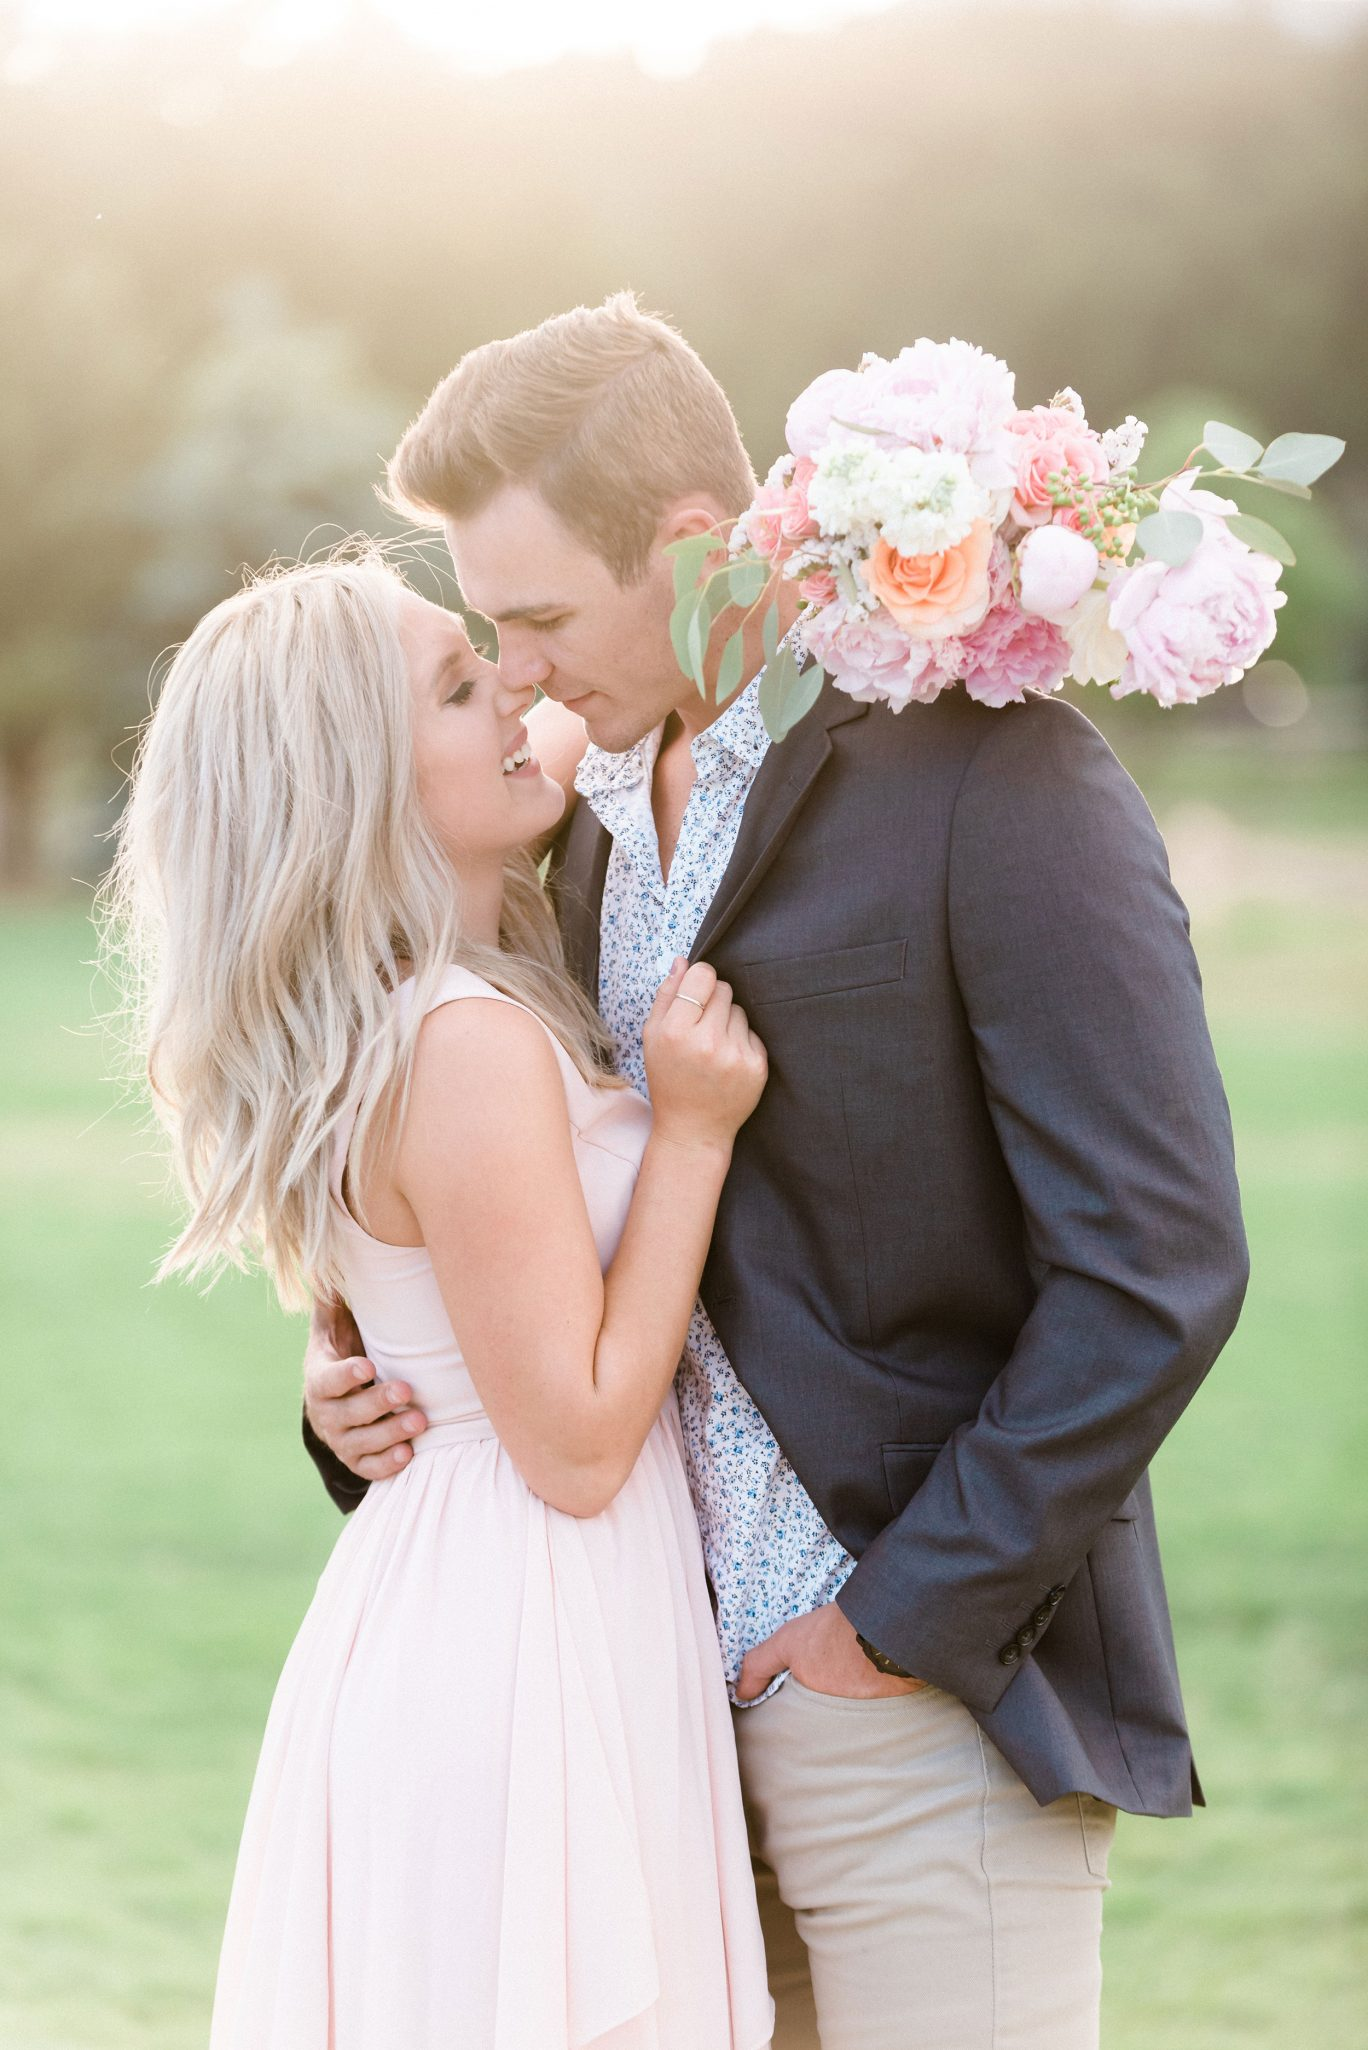 A Romantic Lakeside Engagement Shoot with a Canoe in Colorado